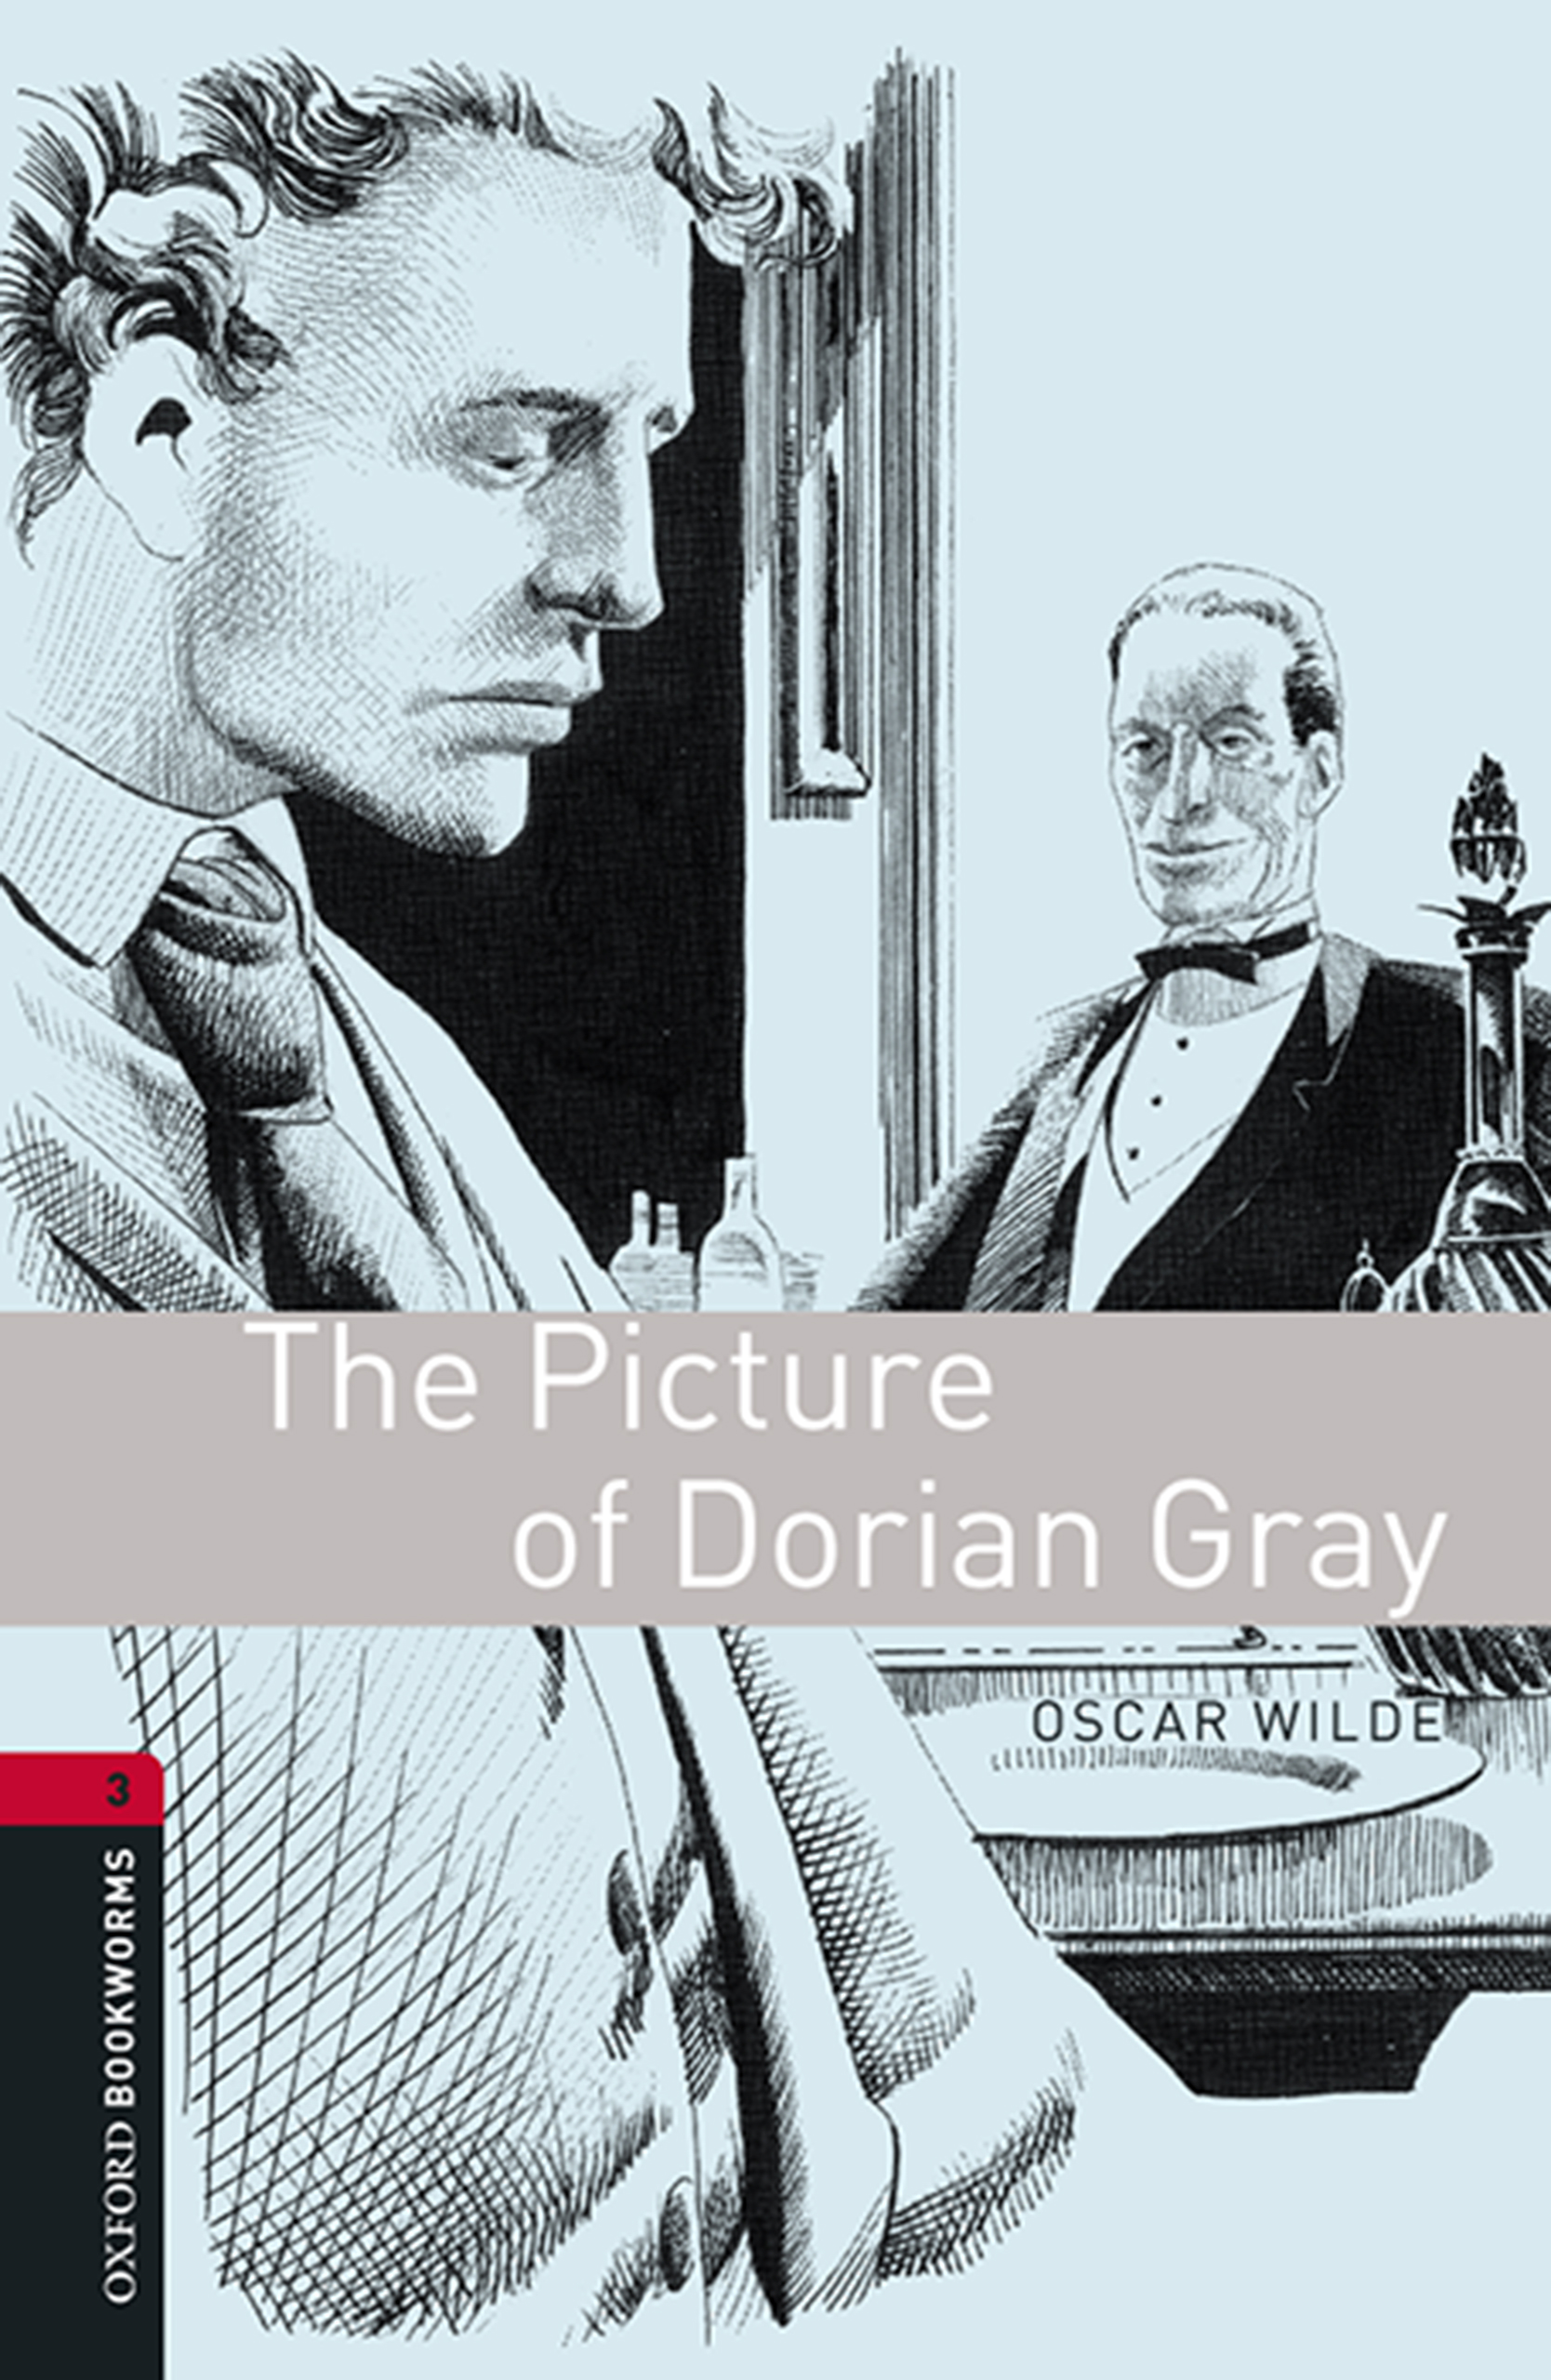 Оскар Уайльд The Picture of Dorian Gray original 1 pcs pci can ean 733 0130 00332 3 selling with good quality